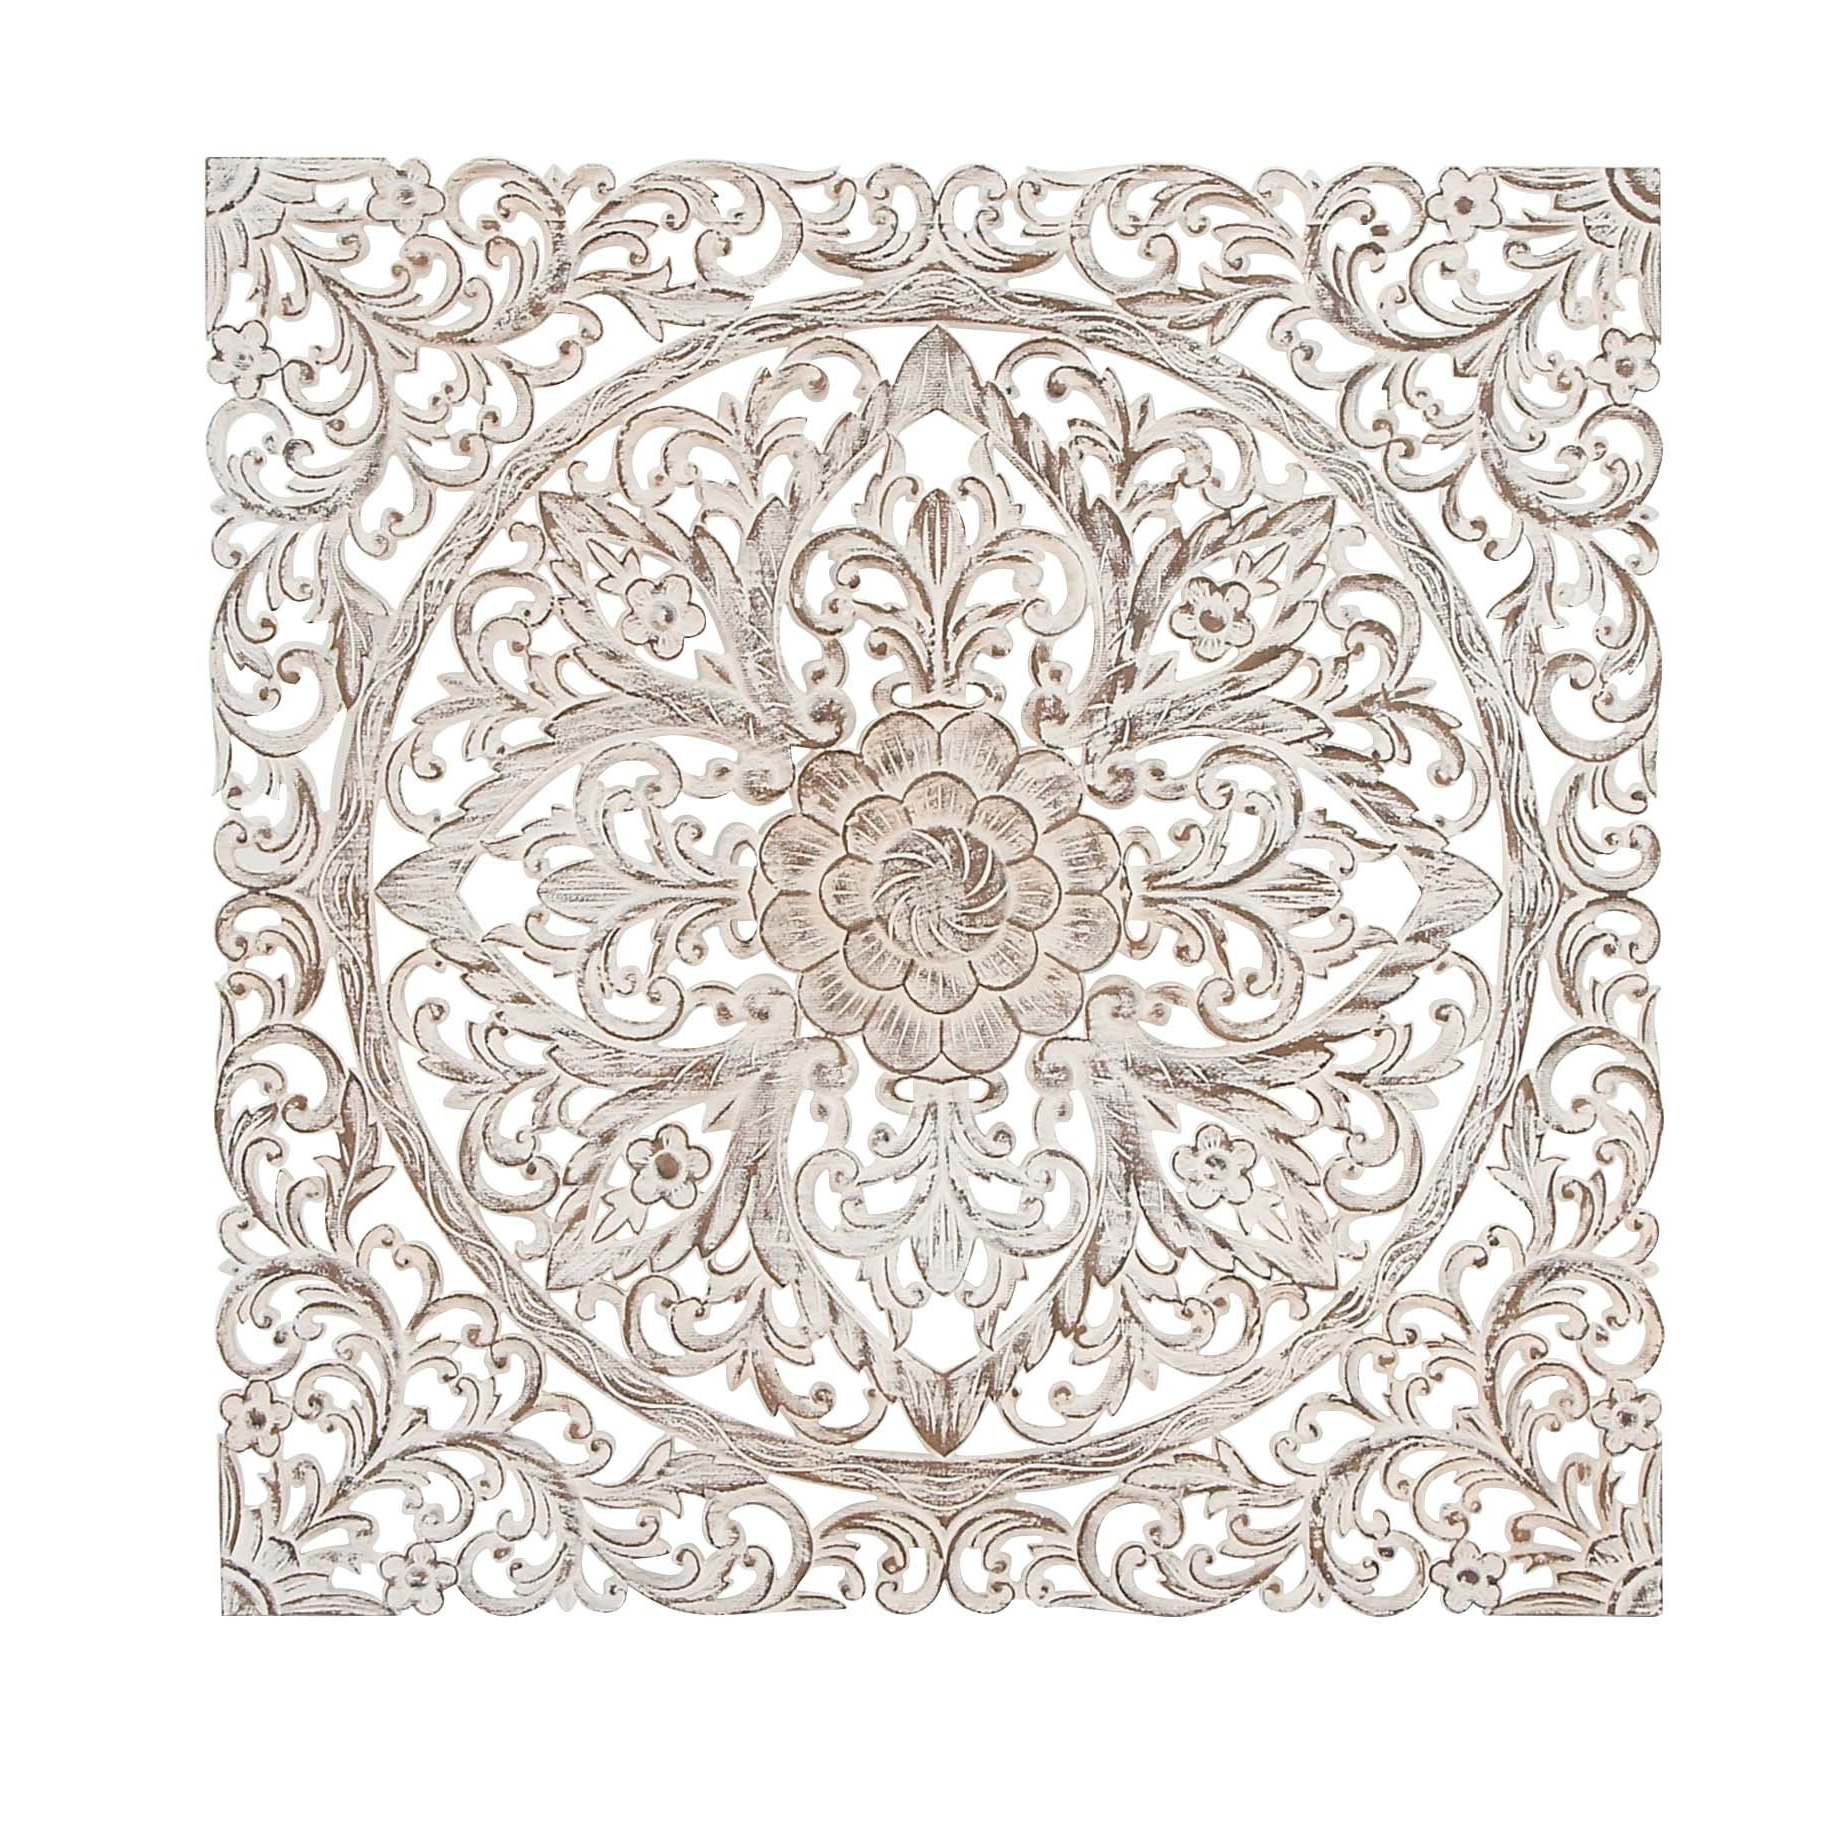 Preferred Medallion Wall Art Pertaining To Bungalow Rose Traditional Carved Floral Medallion Wall Decor (View 6 of 15)